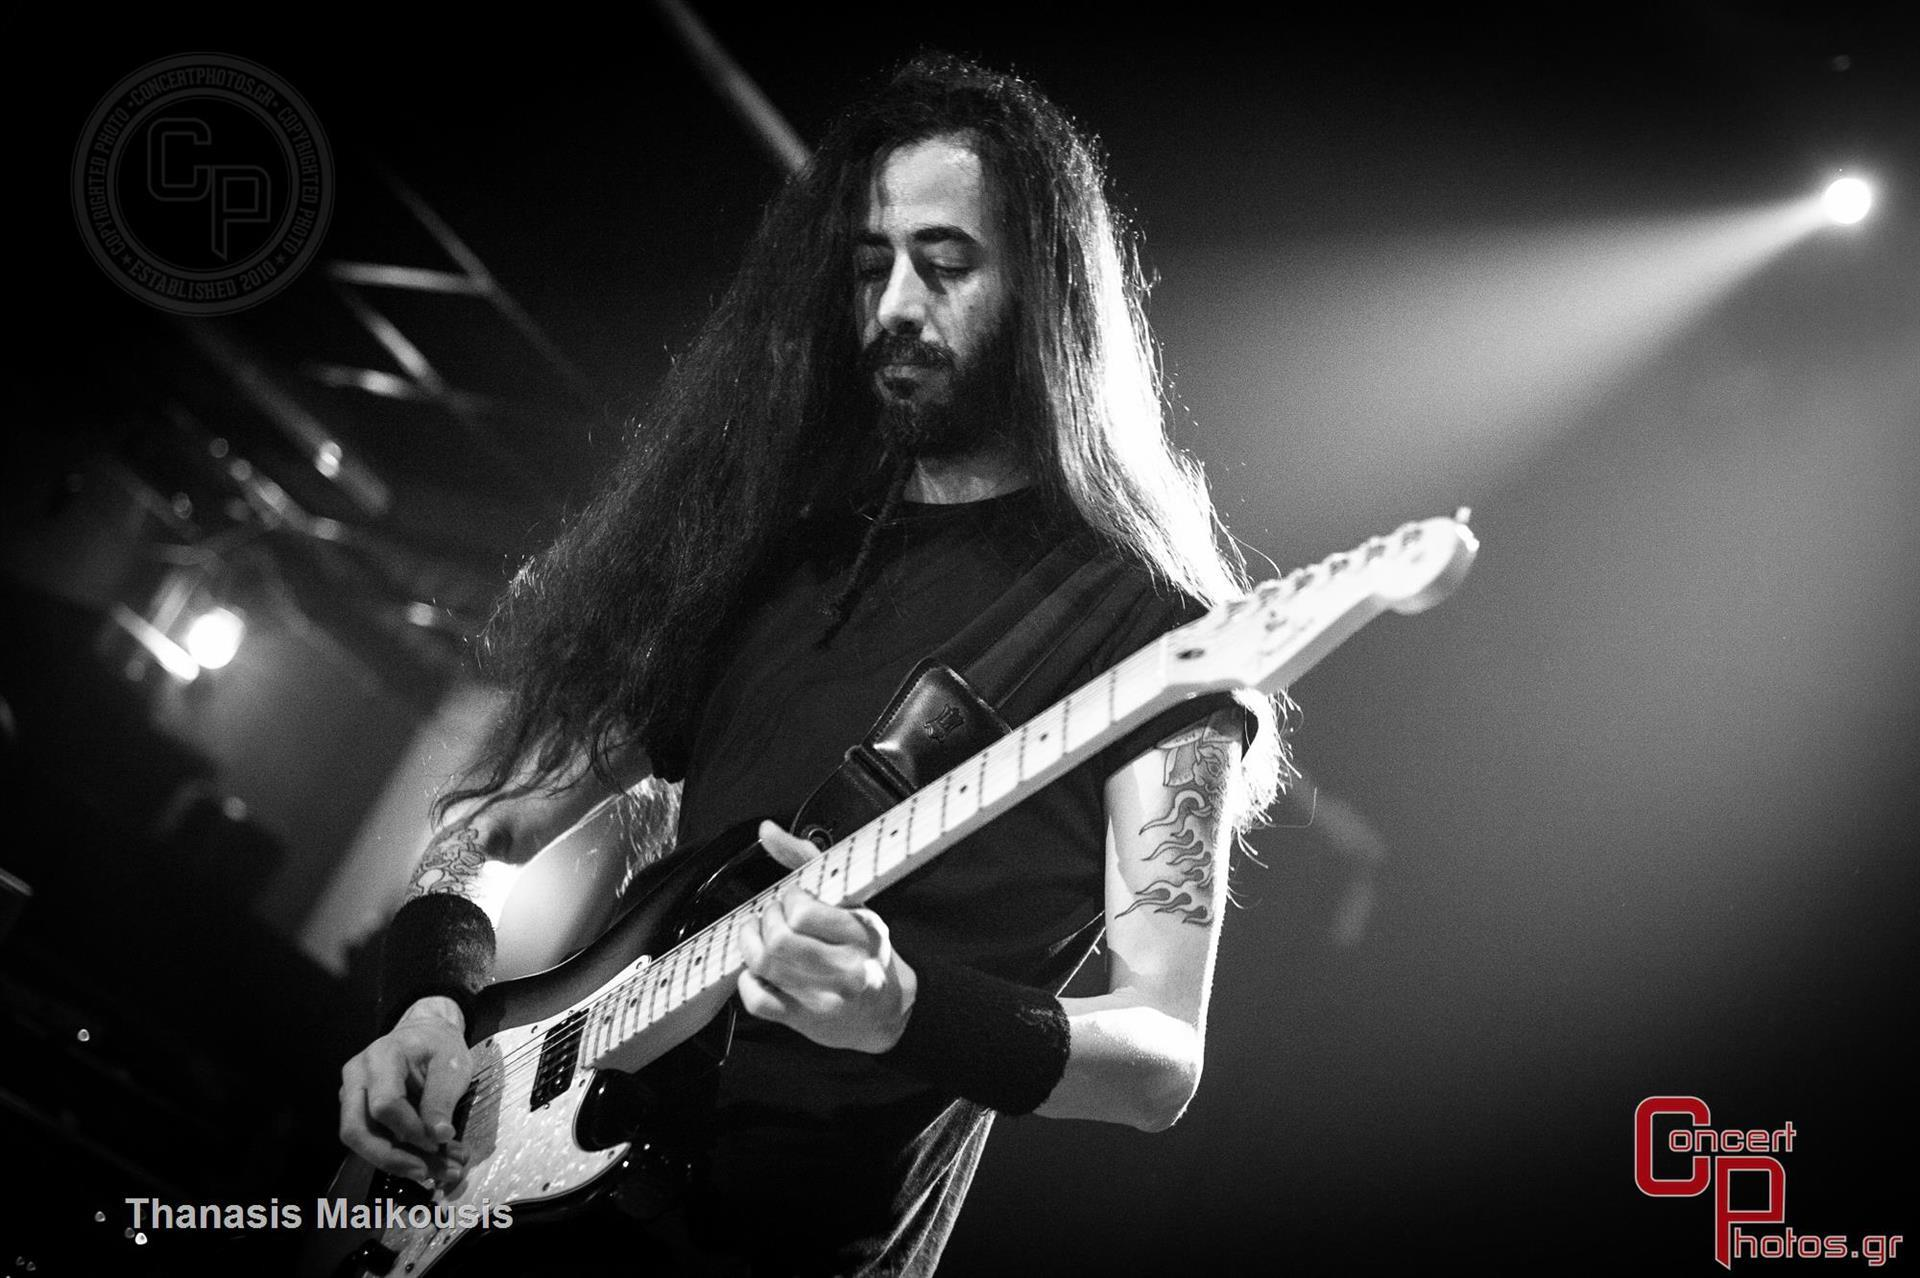 Nightstalker Three Holy Strangers-Nightstalker-Gagarin-April-2015 photographer: Thanasis Maikousis - ConcertPhotos - 20150425_2241_09